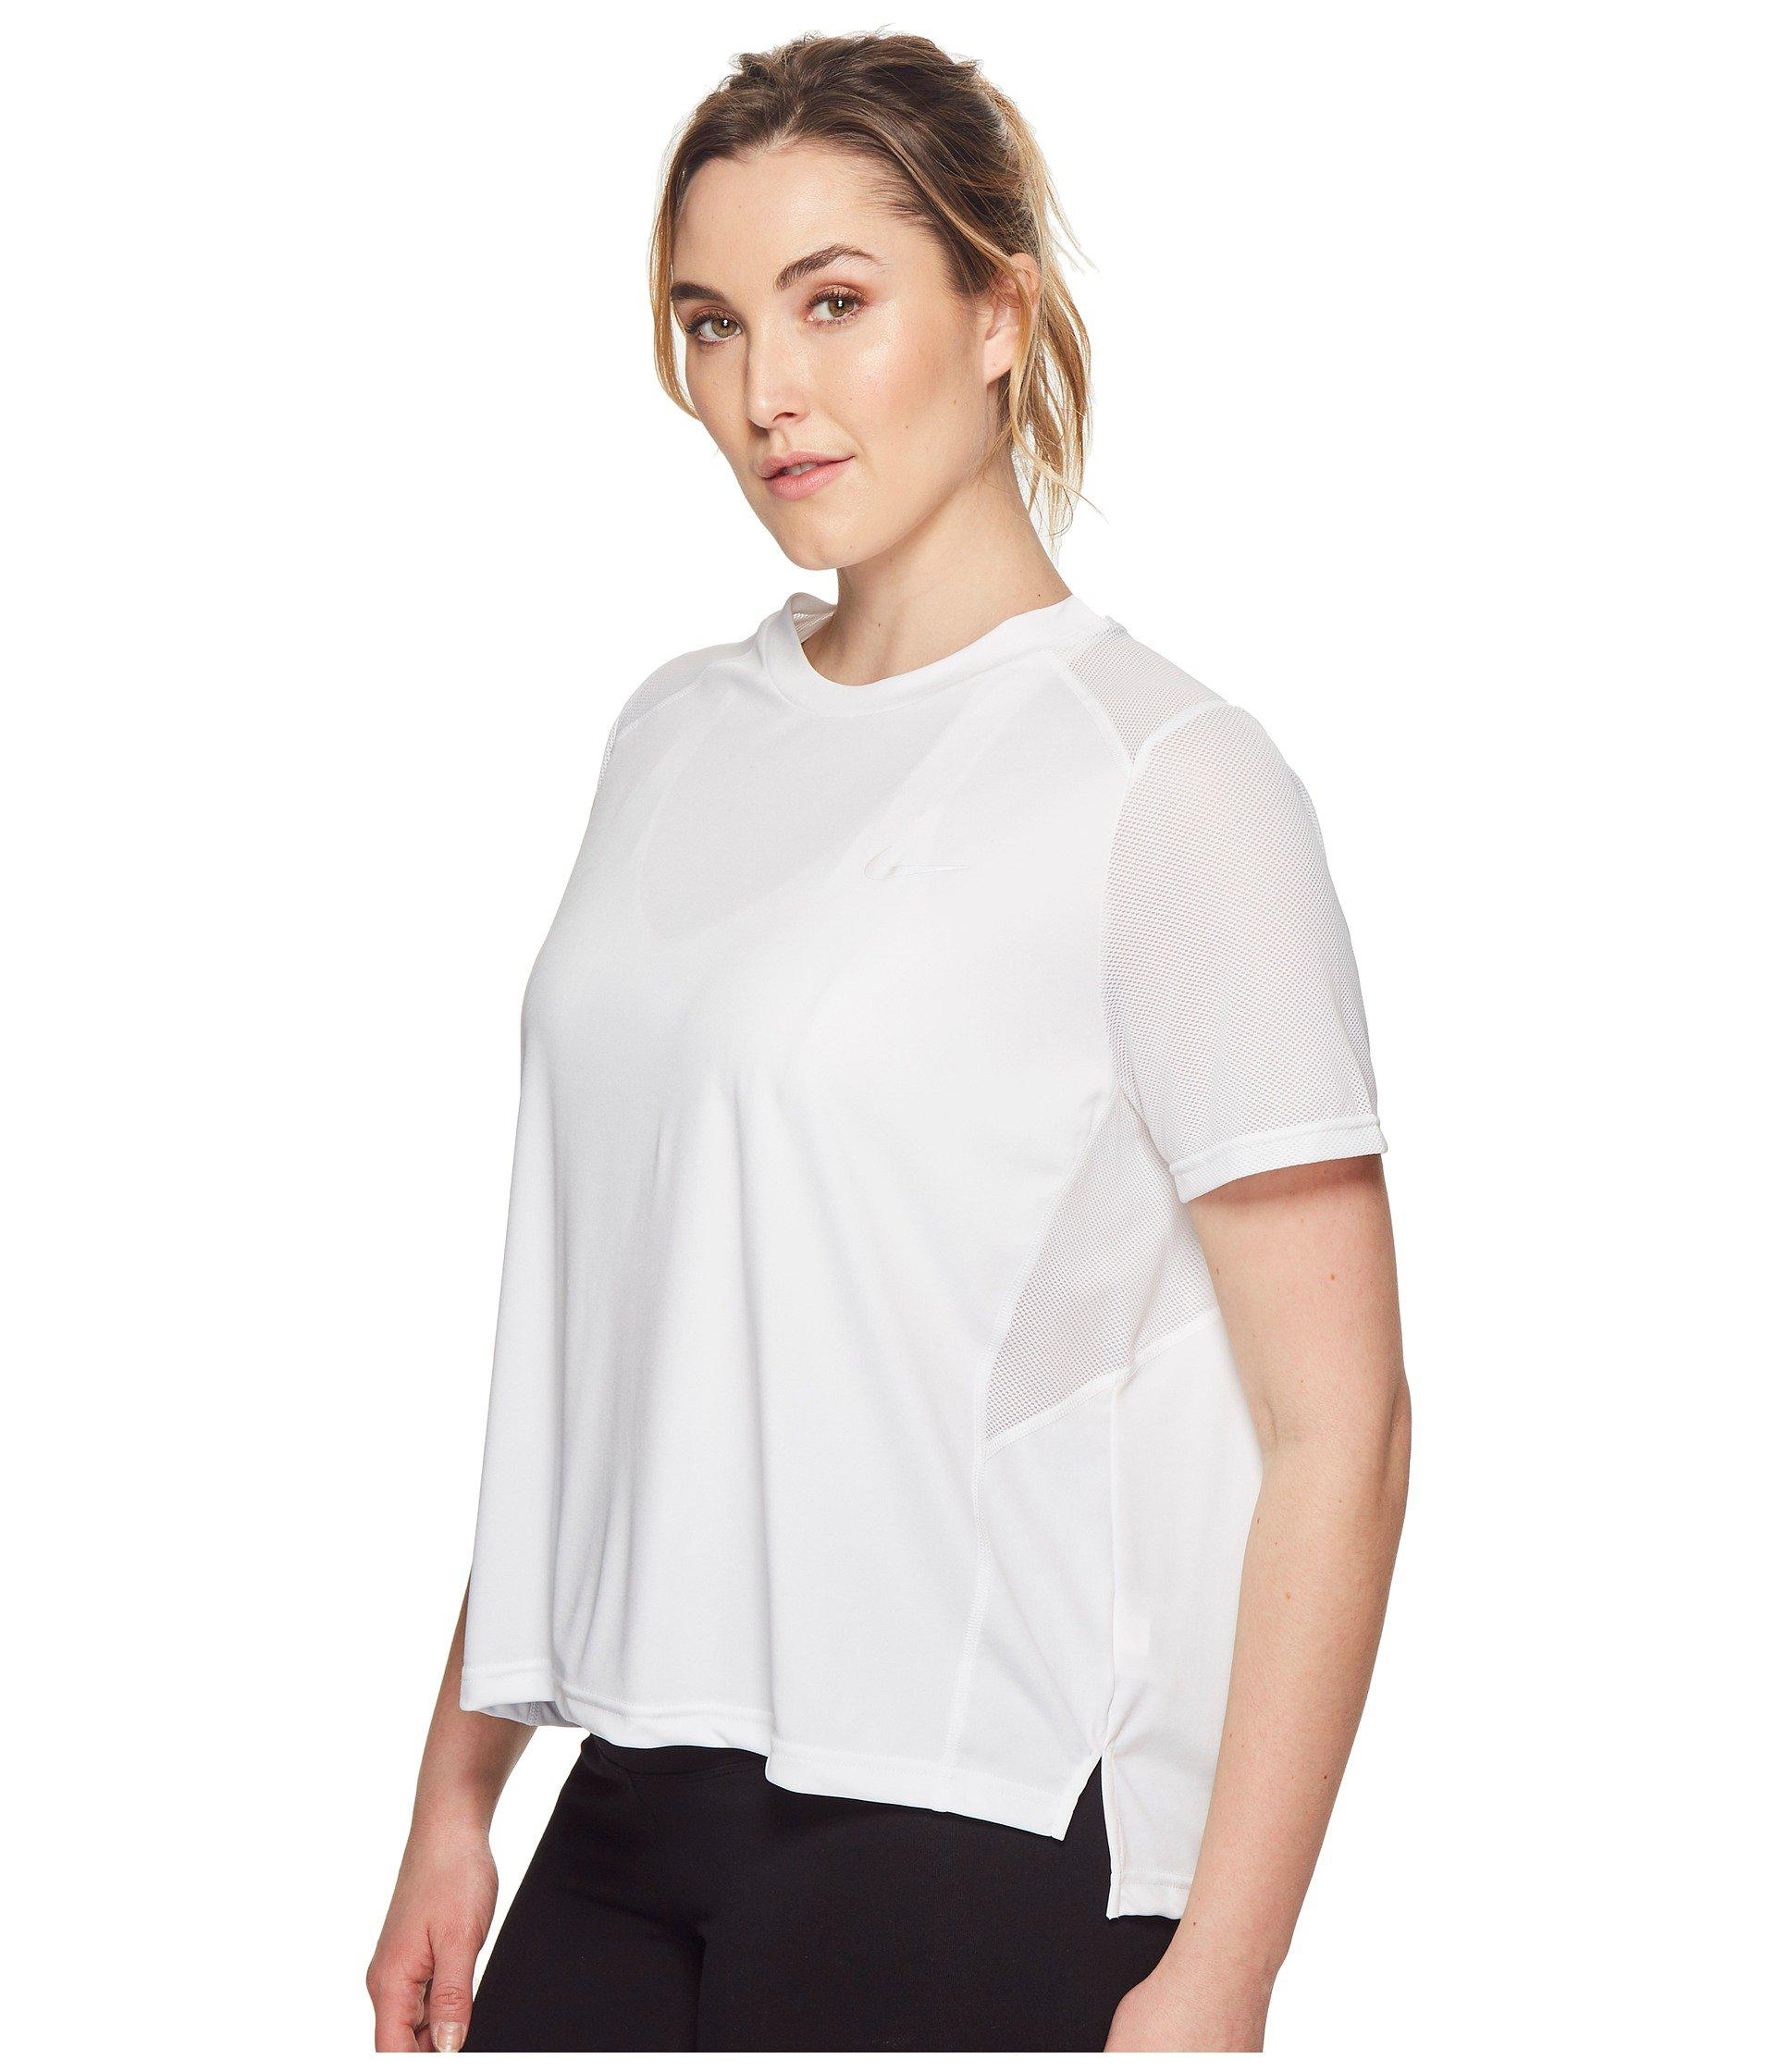 hot sale online eb700 15404 Lyst - Nike Dry Miler Short-sleeve Running Top (sizes 1x-3x) in White -  Save 35%